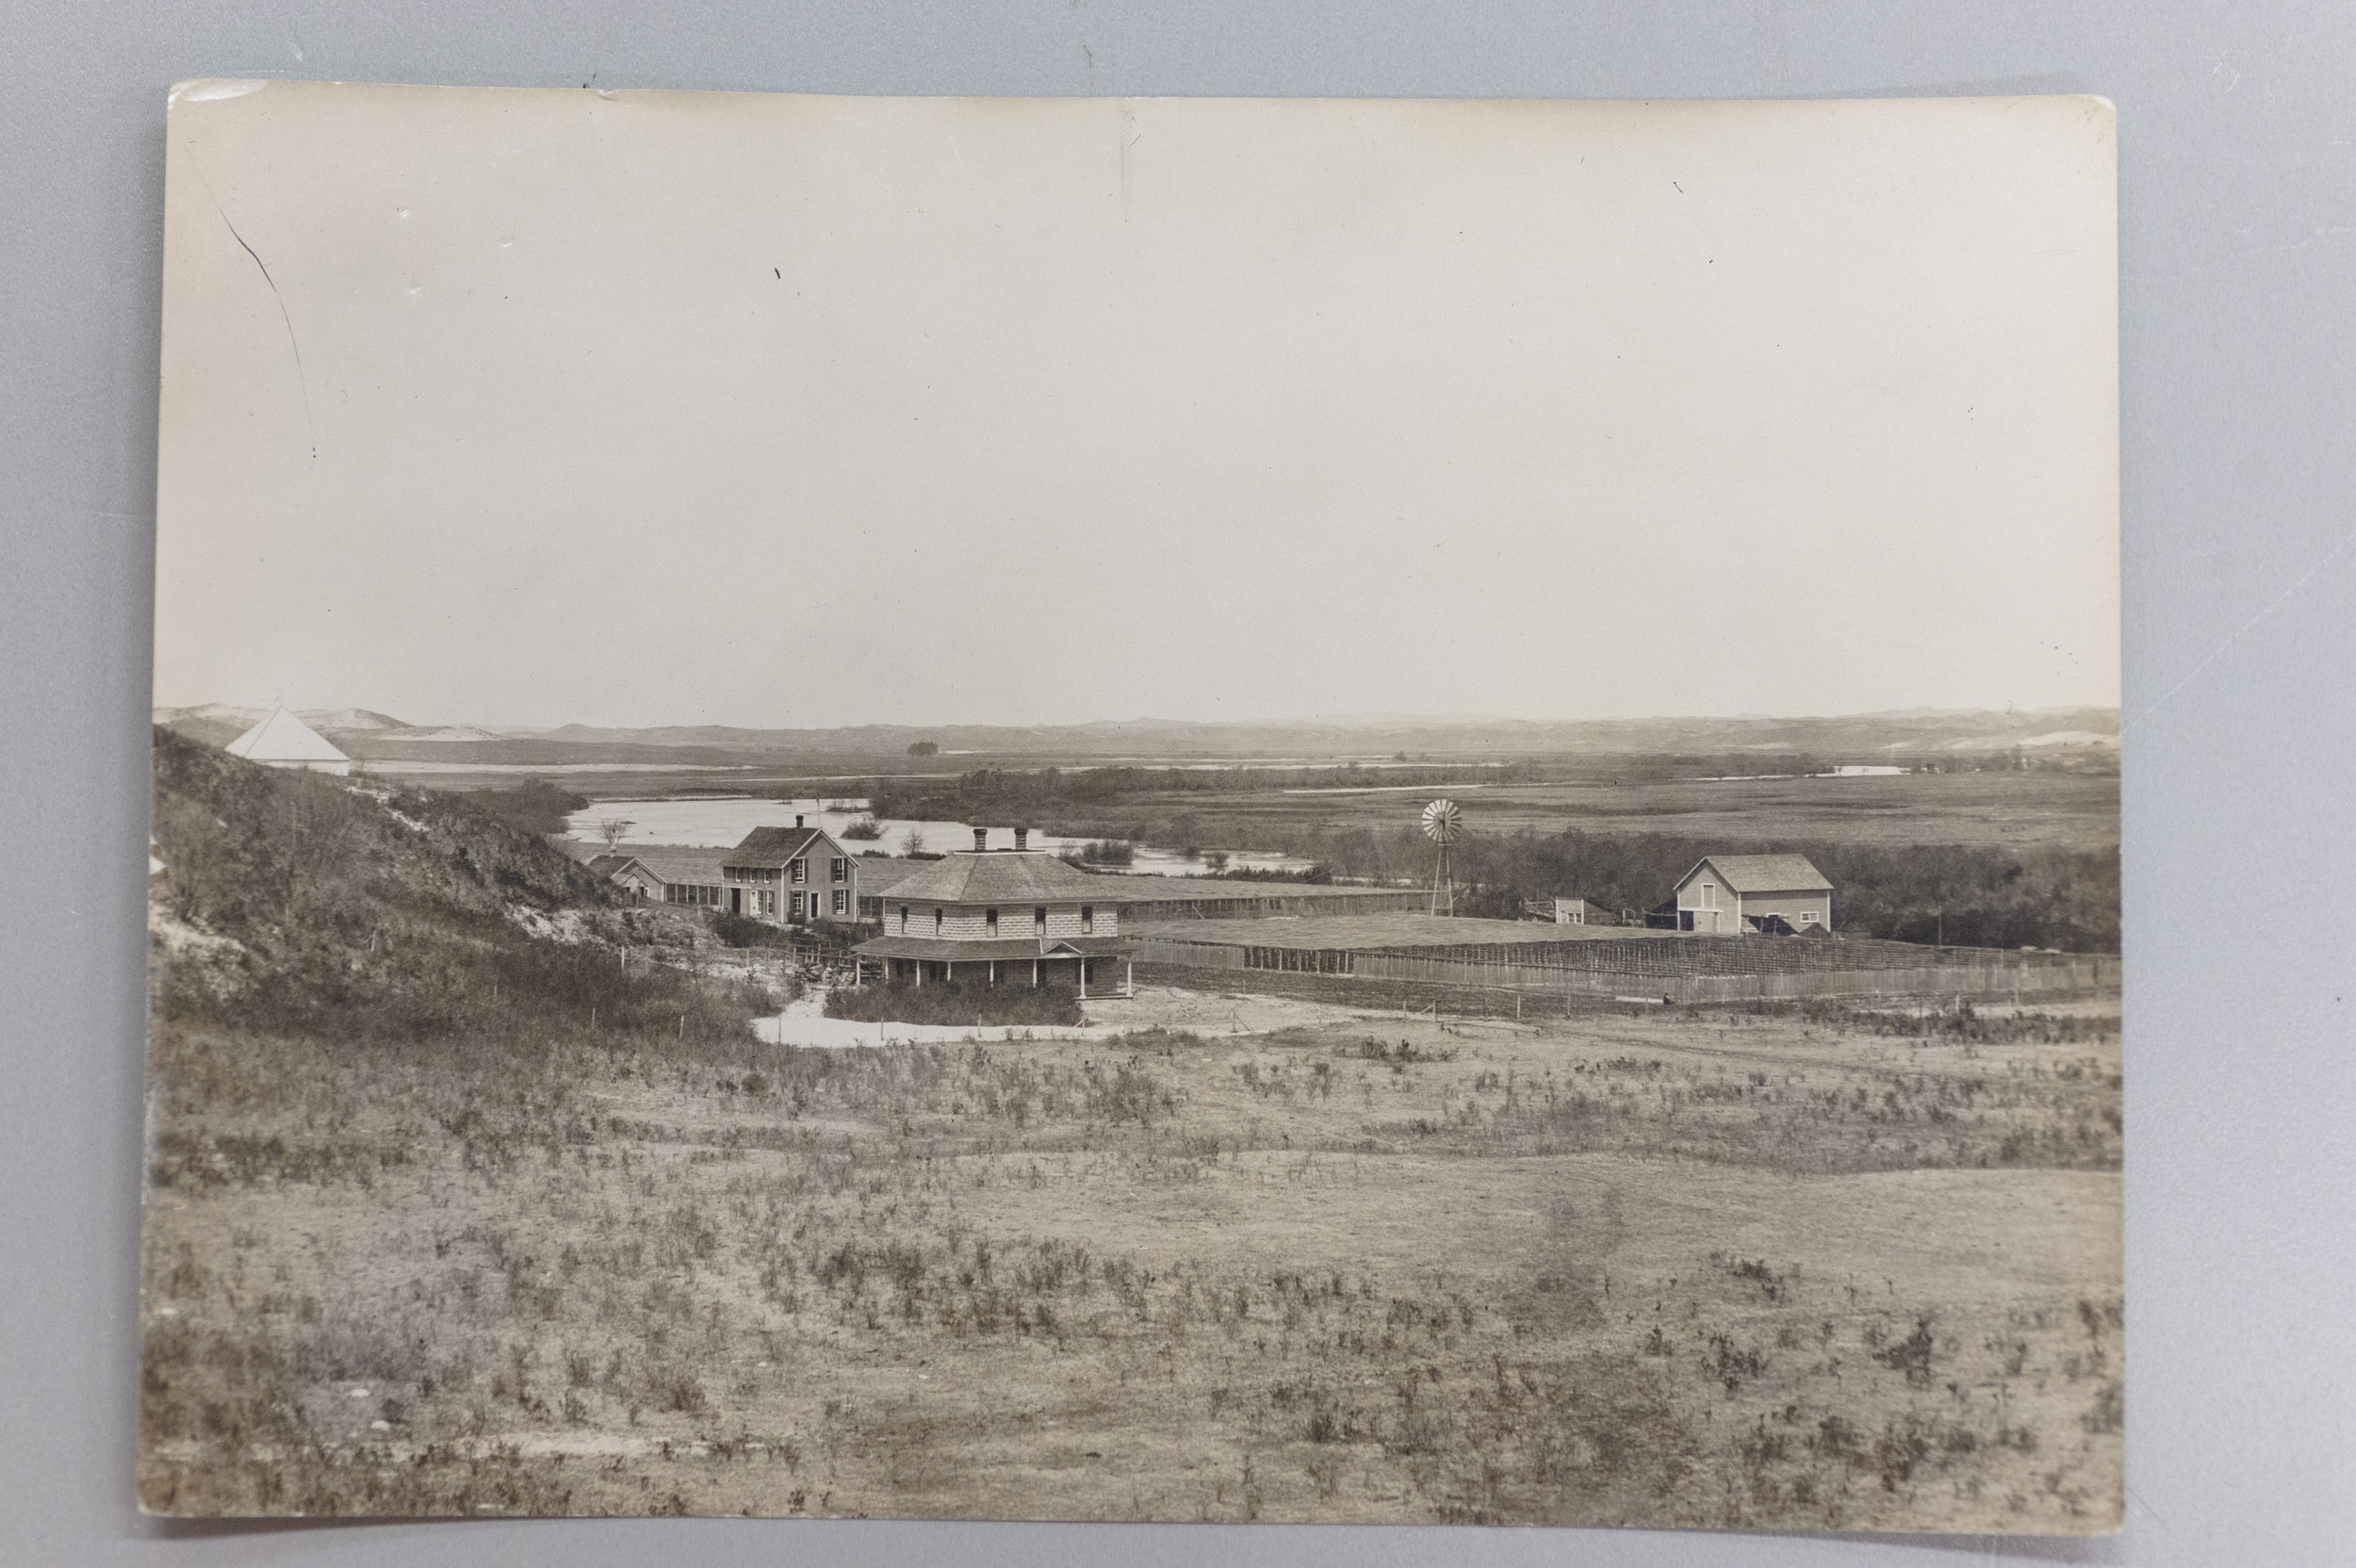 """The Forest Service Nursery at Halsey, Nebraska as I left it on December 31, 1907"" by Charles Anderson Scott.  From the narrative of Charles Anderson Scott. Gifford Pinchot Collection, Library of Congress. Manuscript Division."